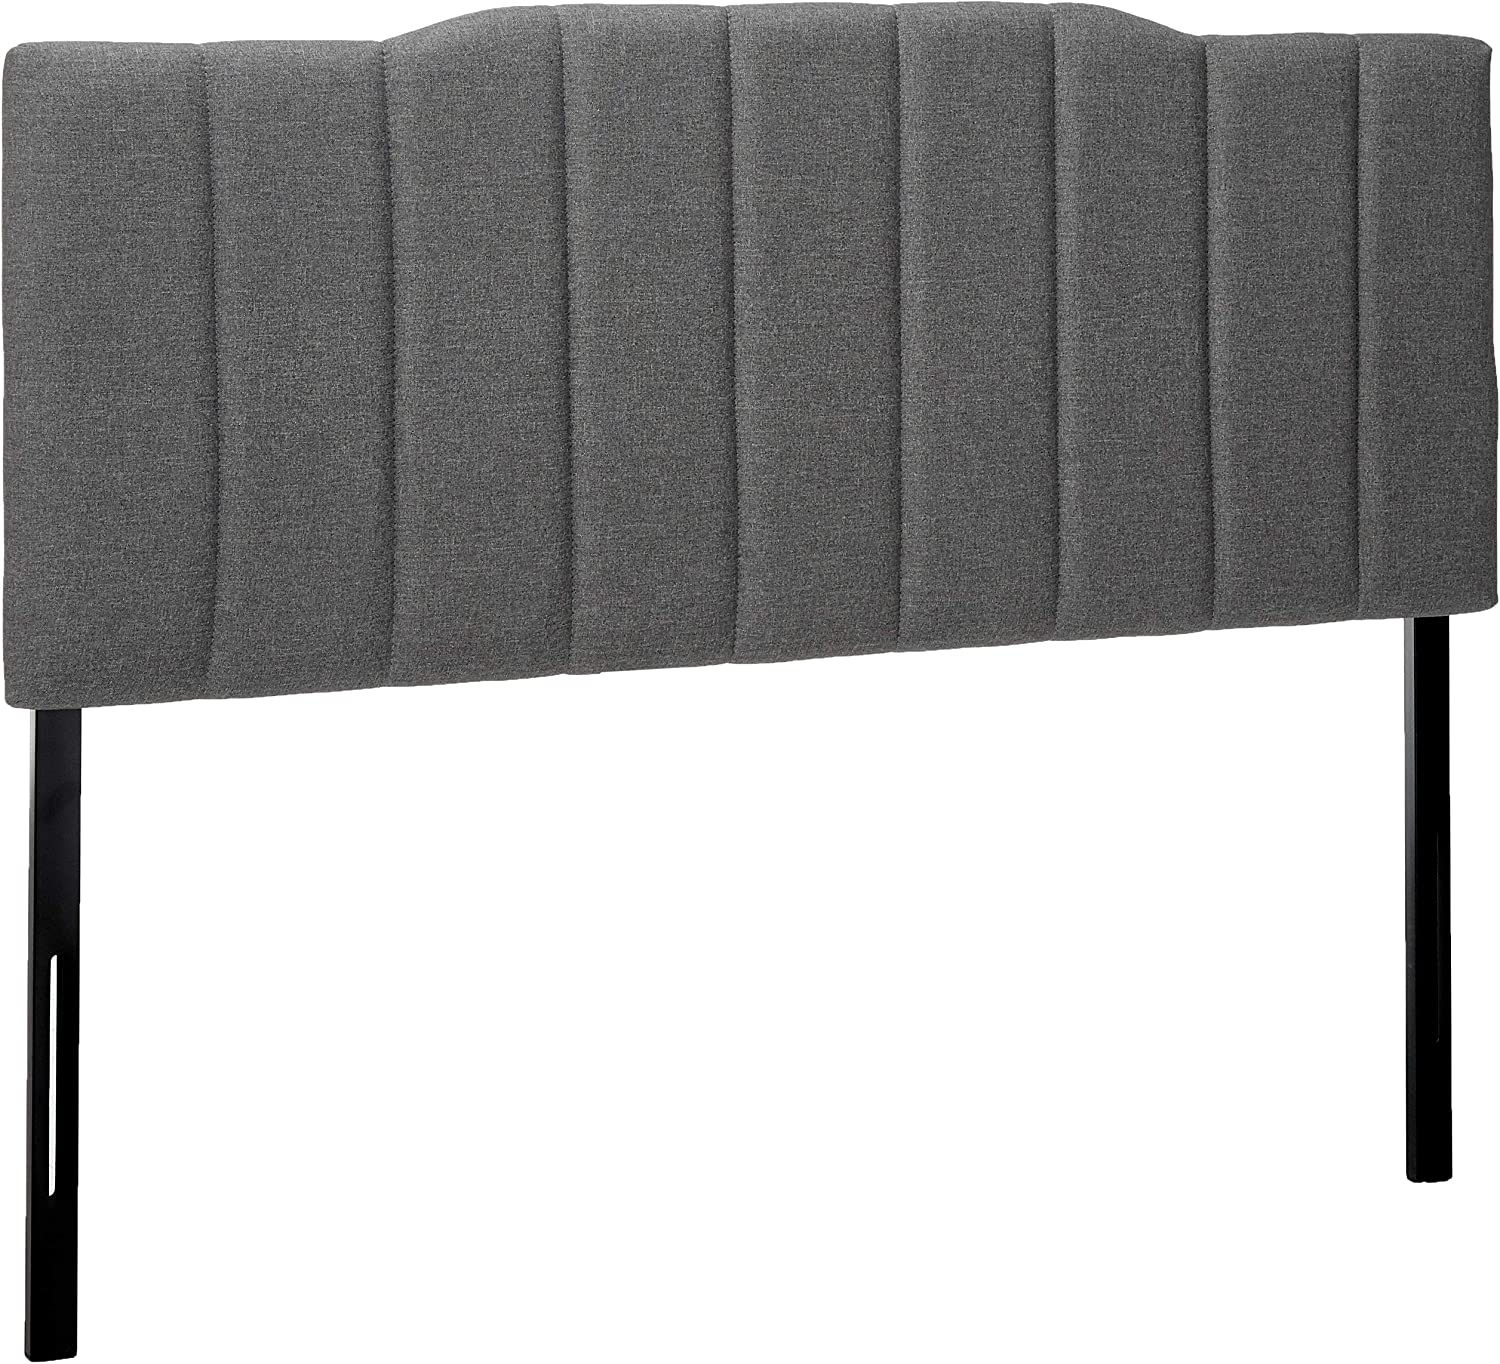 Zinus Upholstered Channel Stitched Headboard in Grey, Full